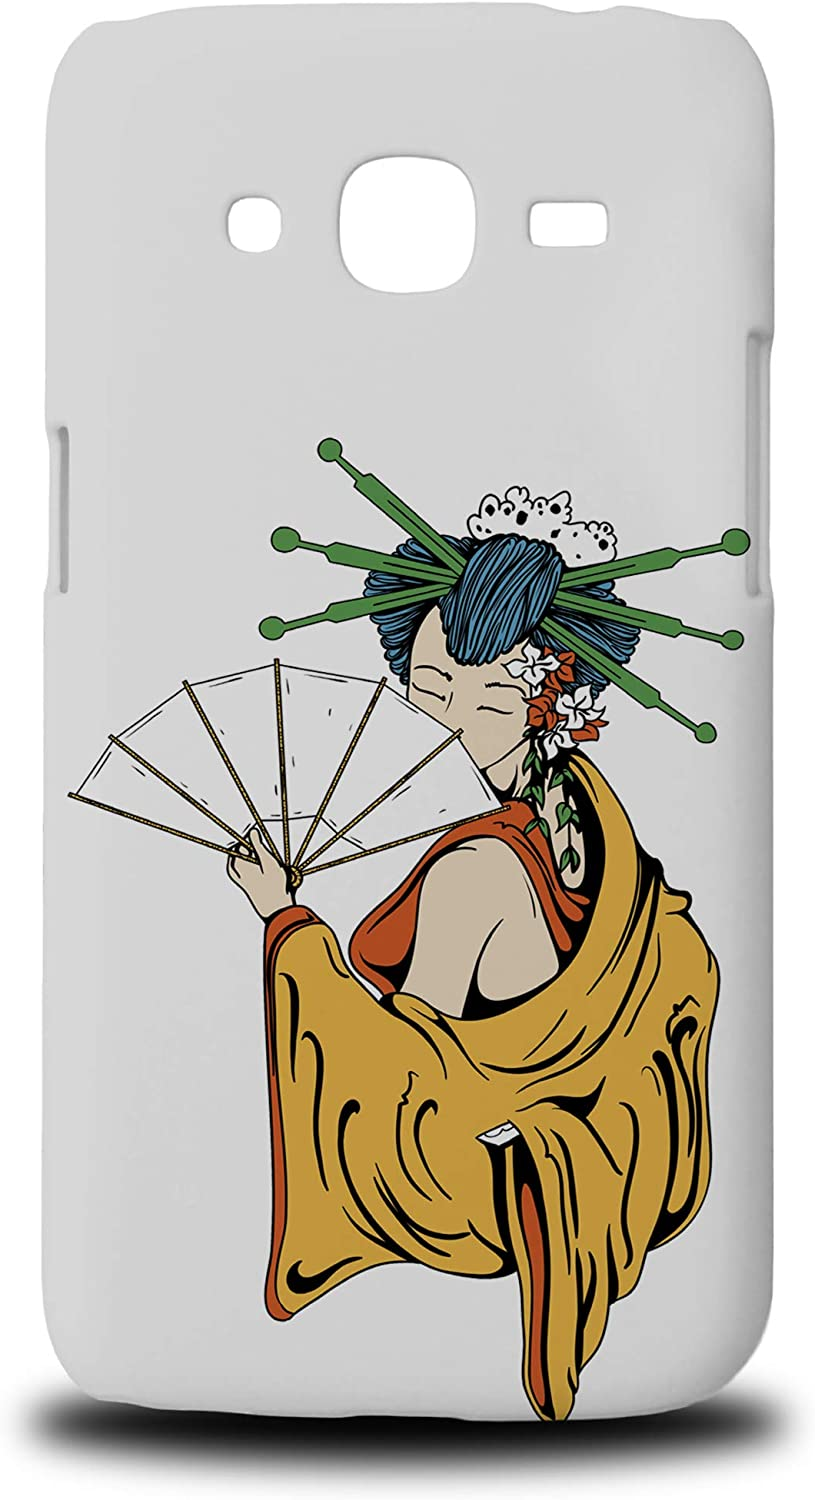 Japanese Geisha Sketch Art 2 Hard Phone Case Cover for Samsung Galaxy J2 (2016)